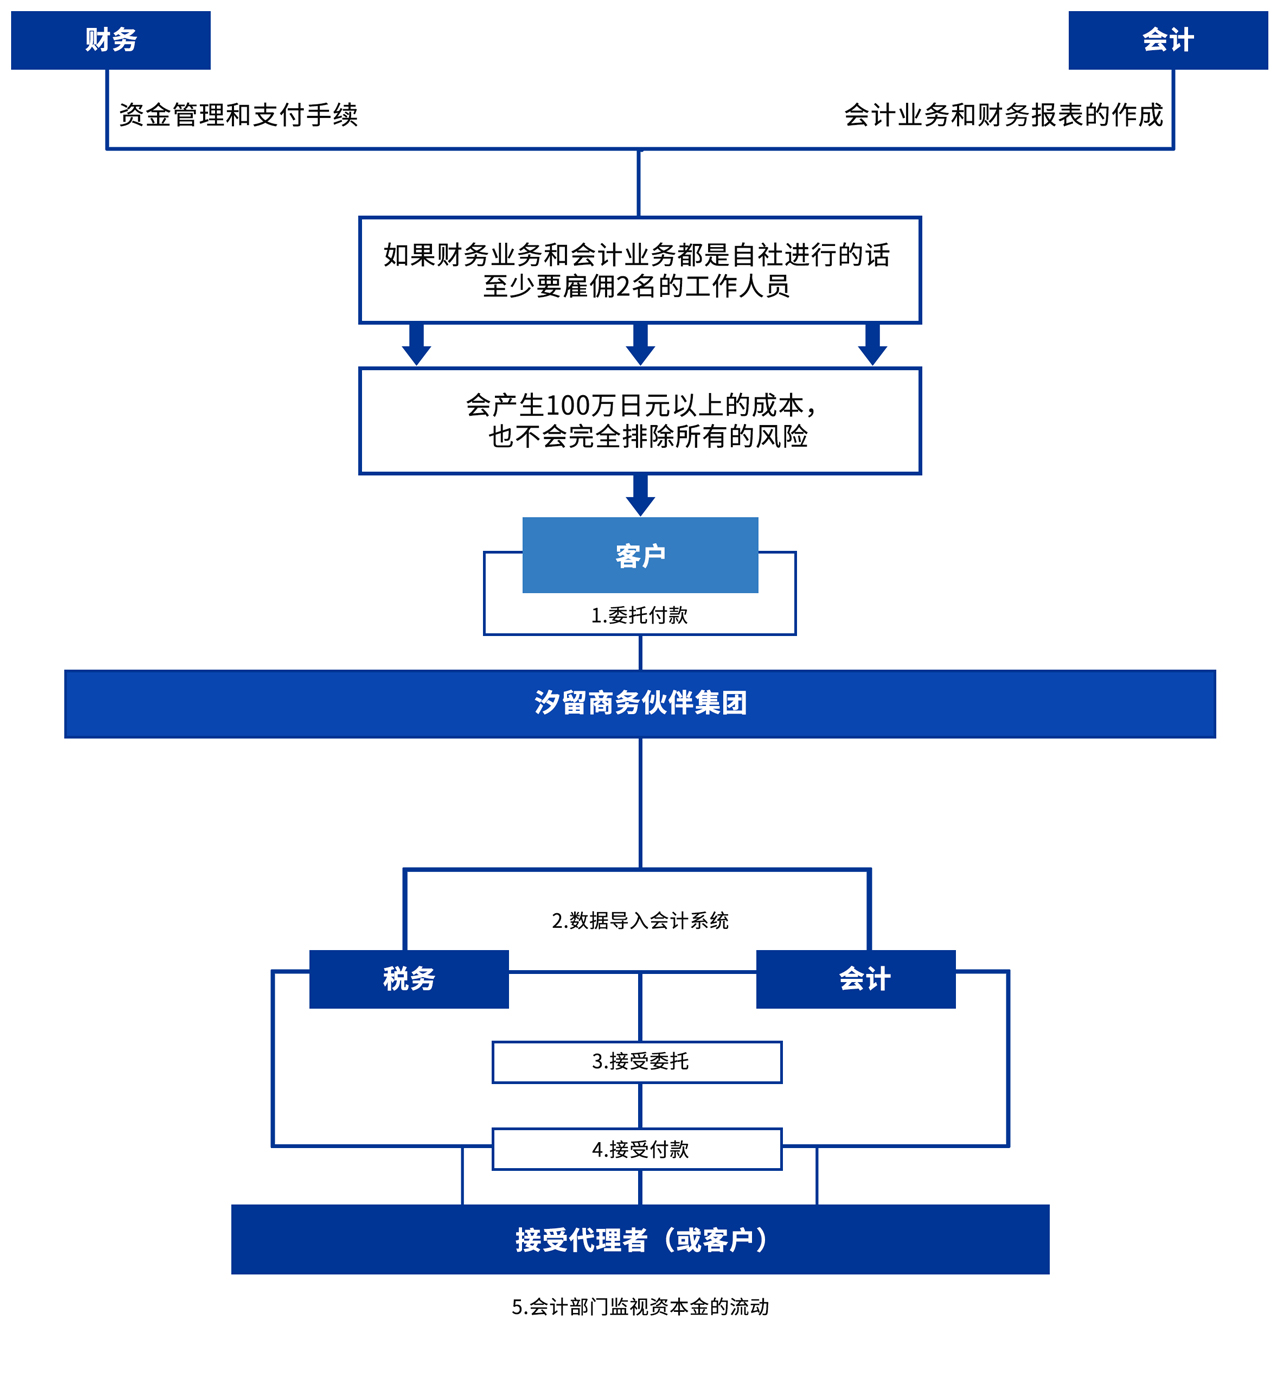 outsourcing-chart3-cn